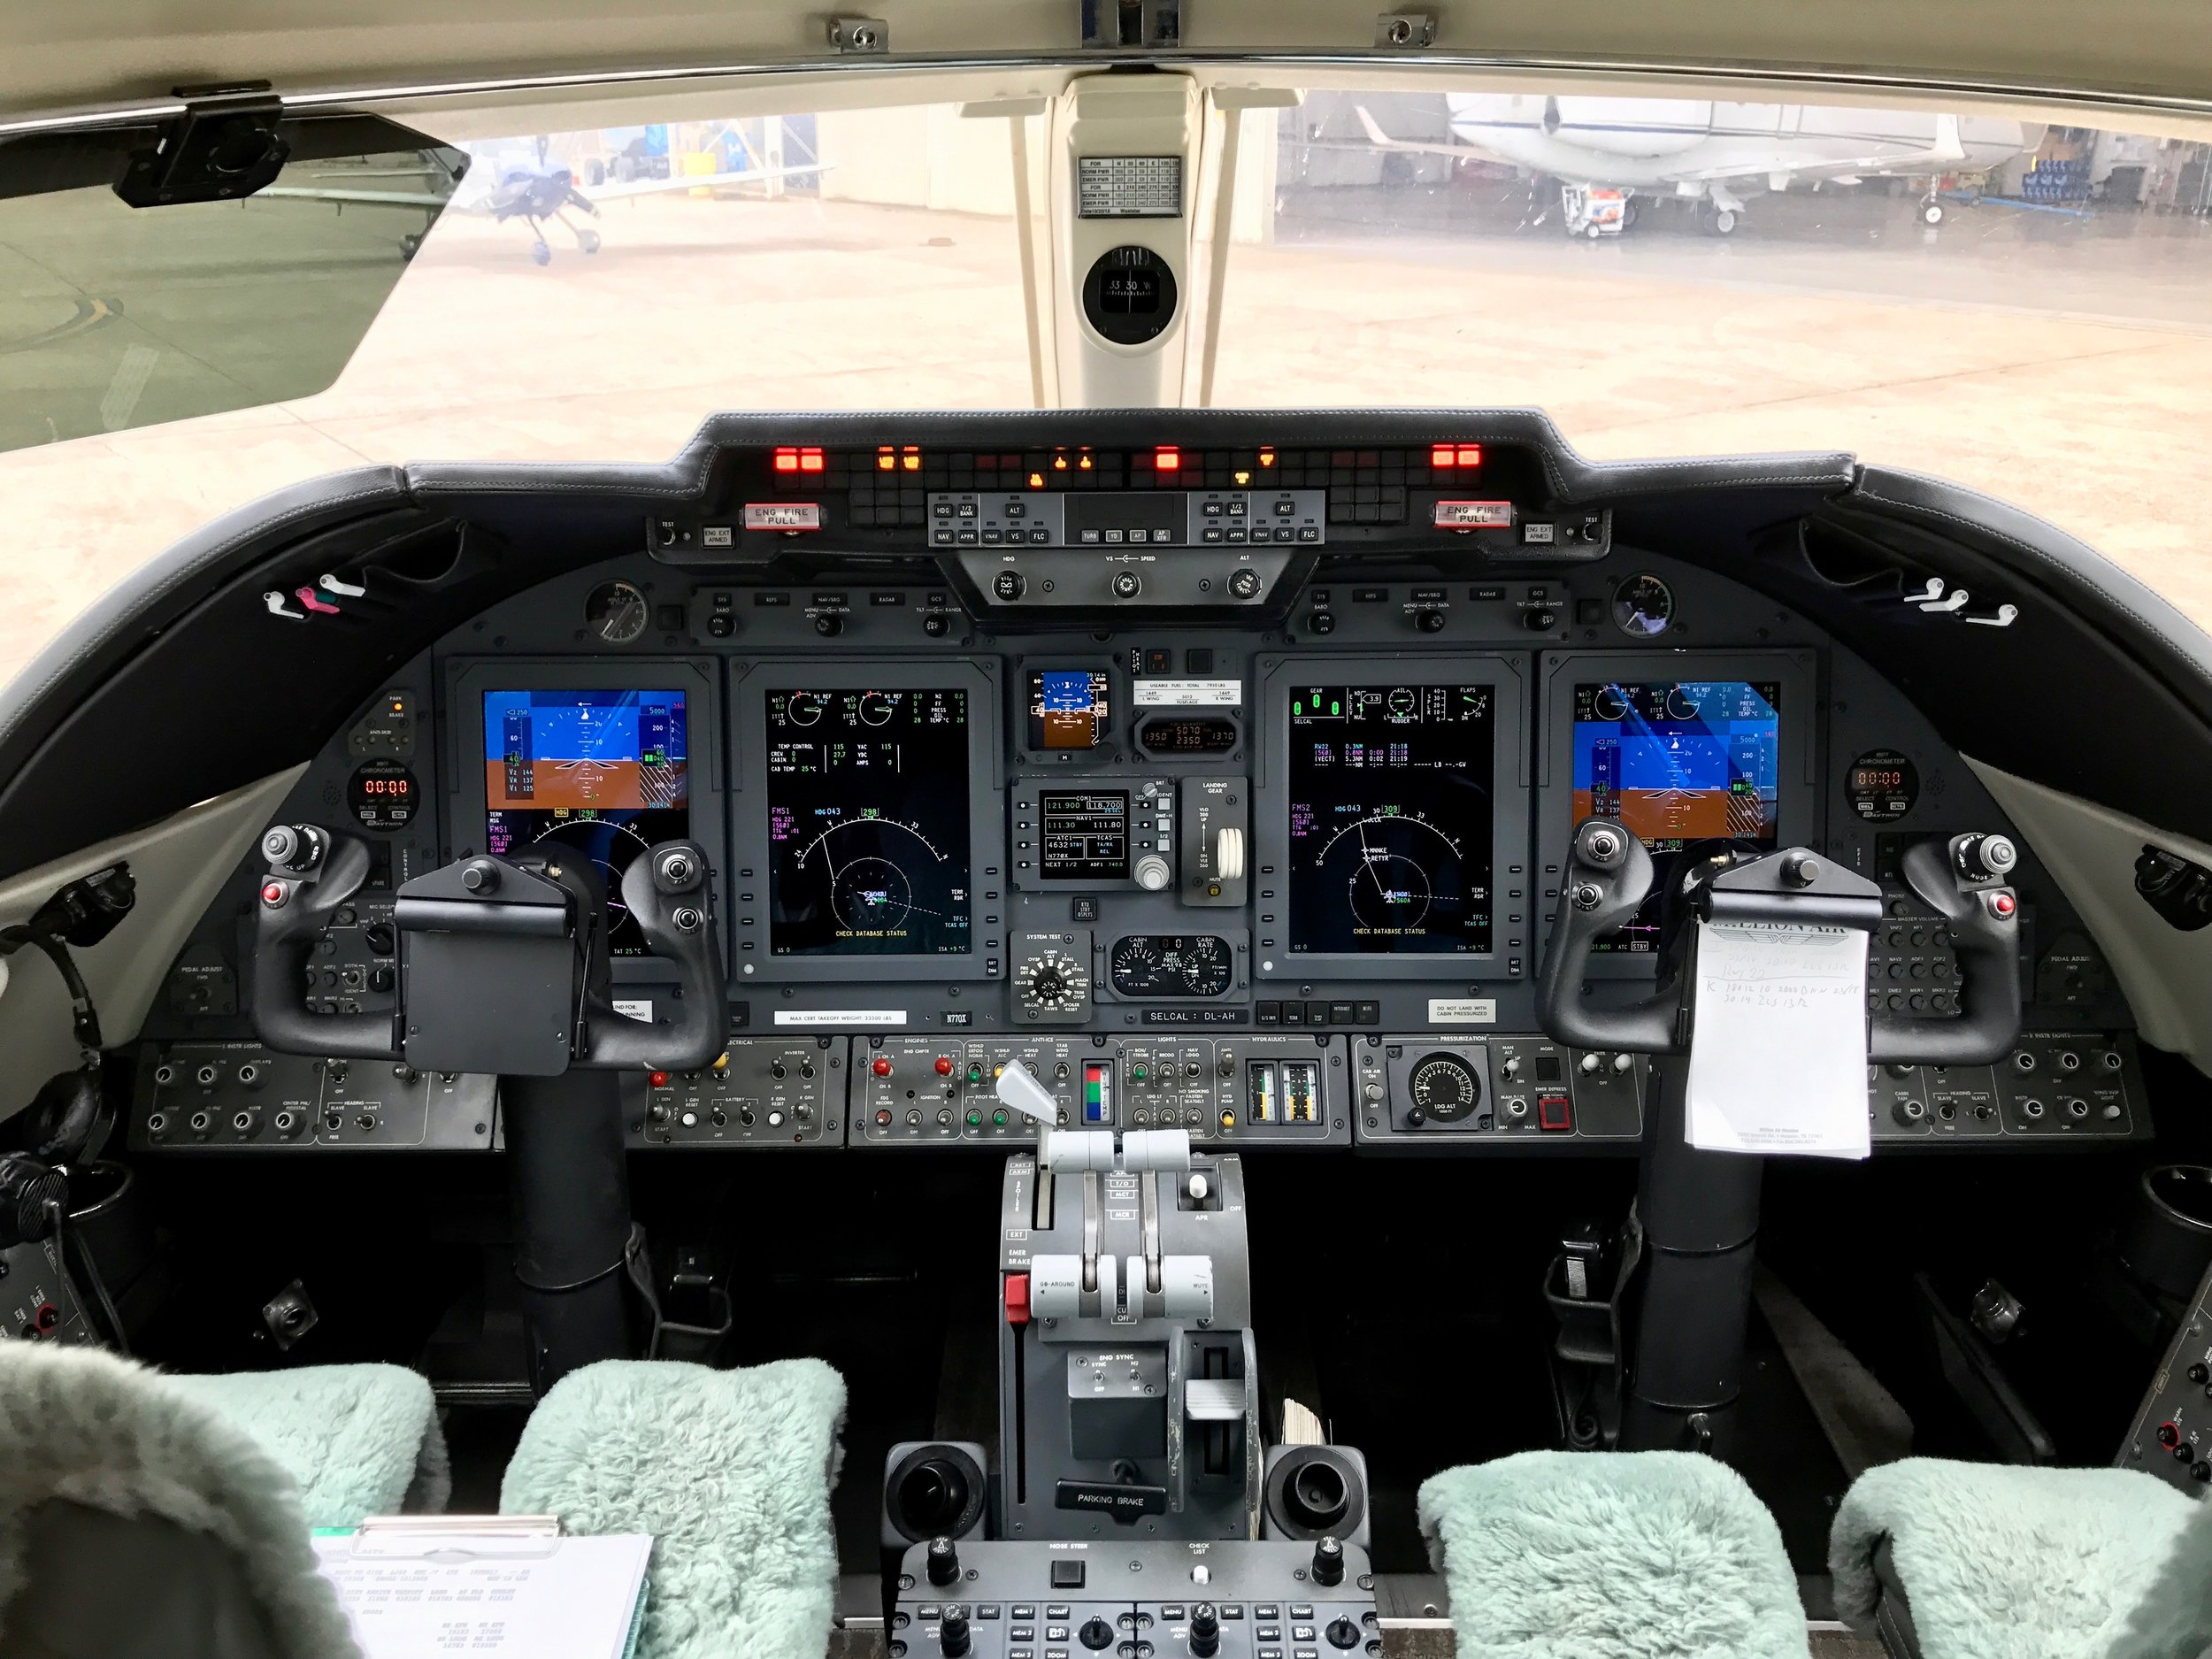 Crew Sourcing - Professional piloting services are available on a full time or contract basis. Let us find you the perfect crew members for your trips.